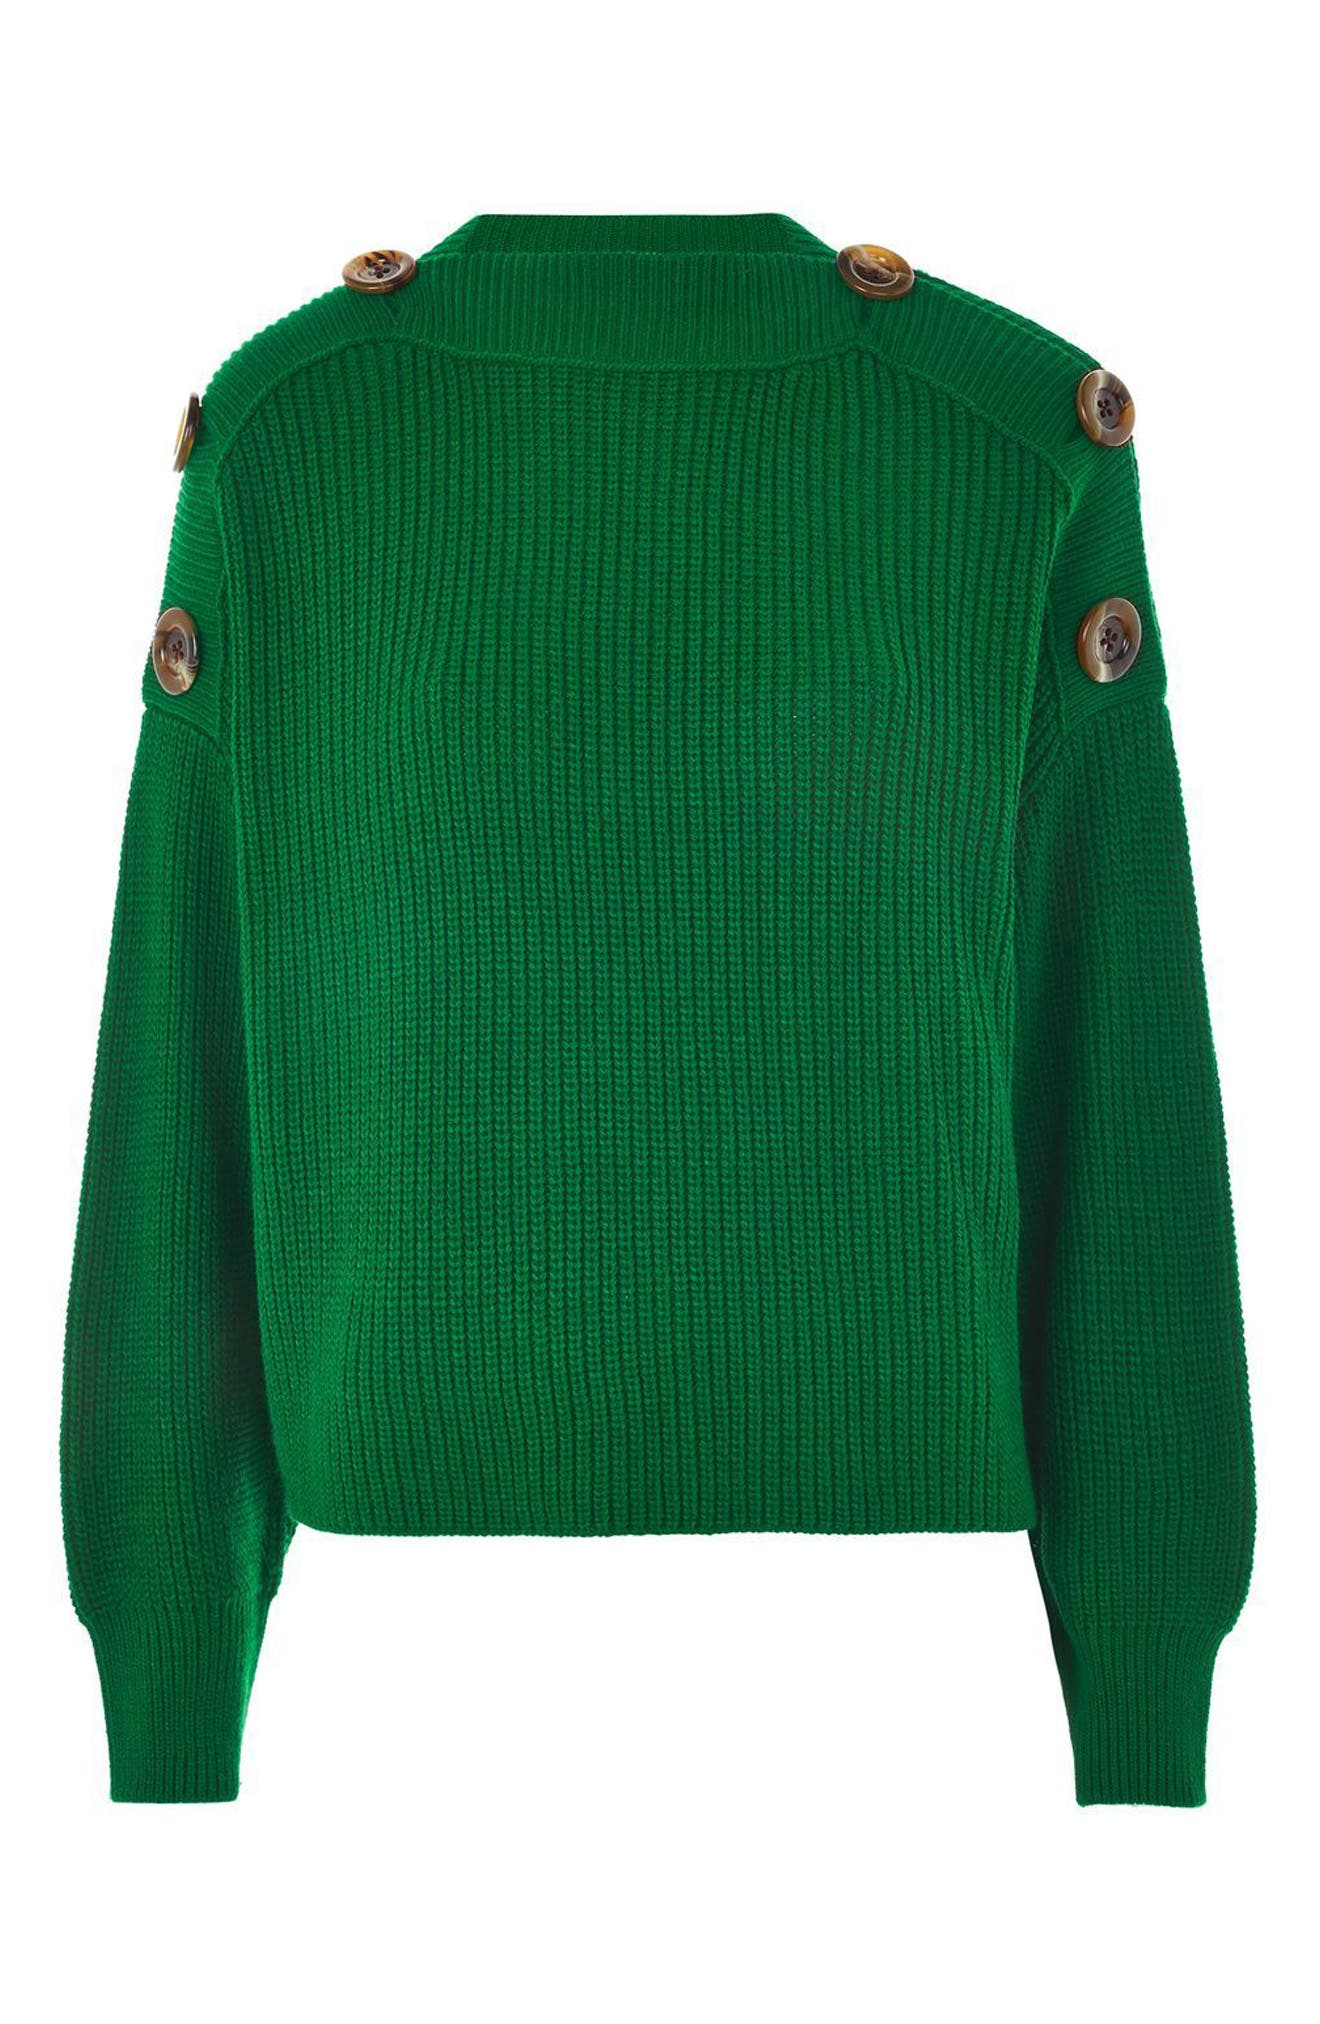 Button Slash Knit Sweater,                             Alternate thumbnail 4, color,                             300